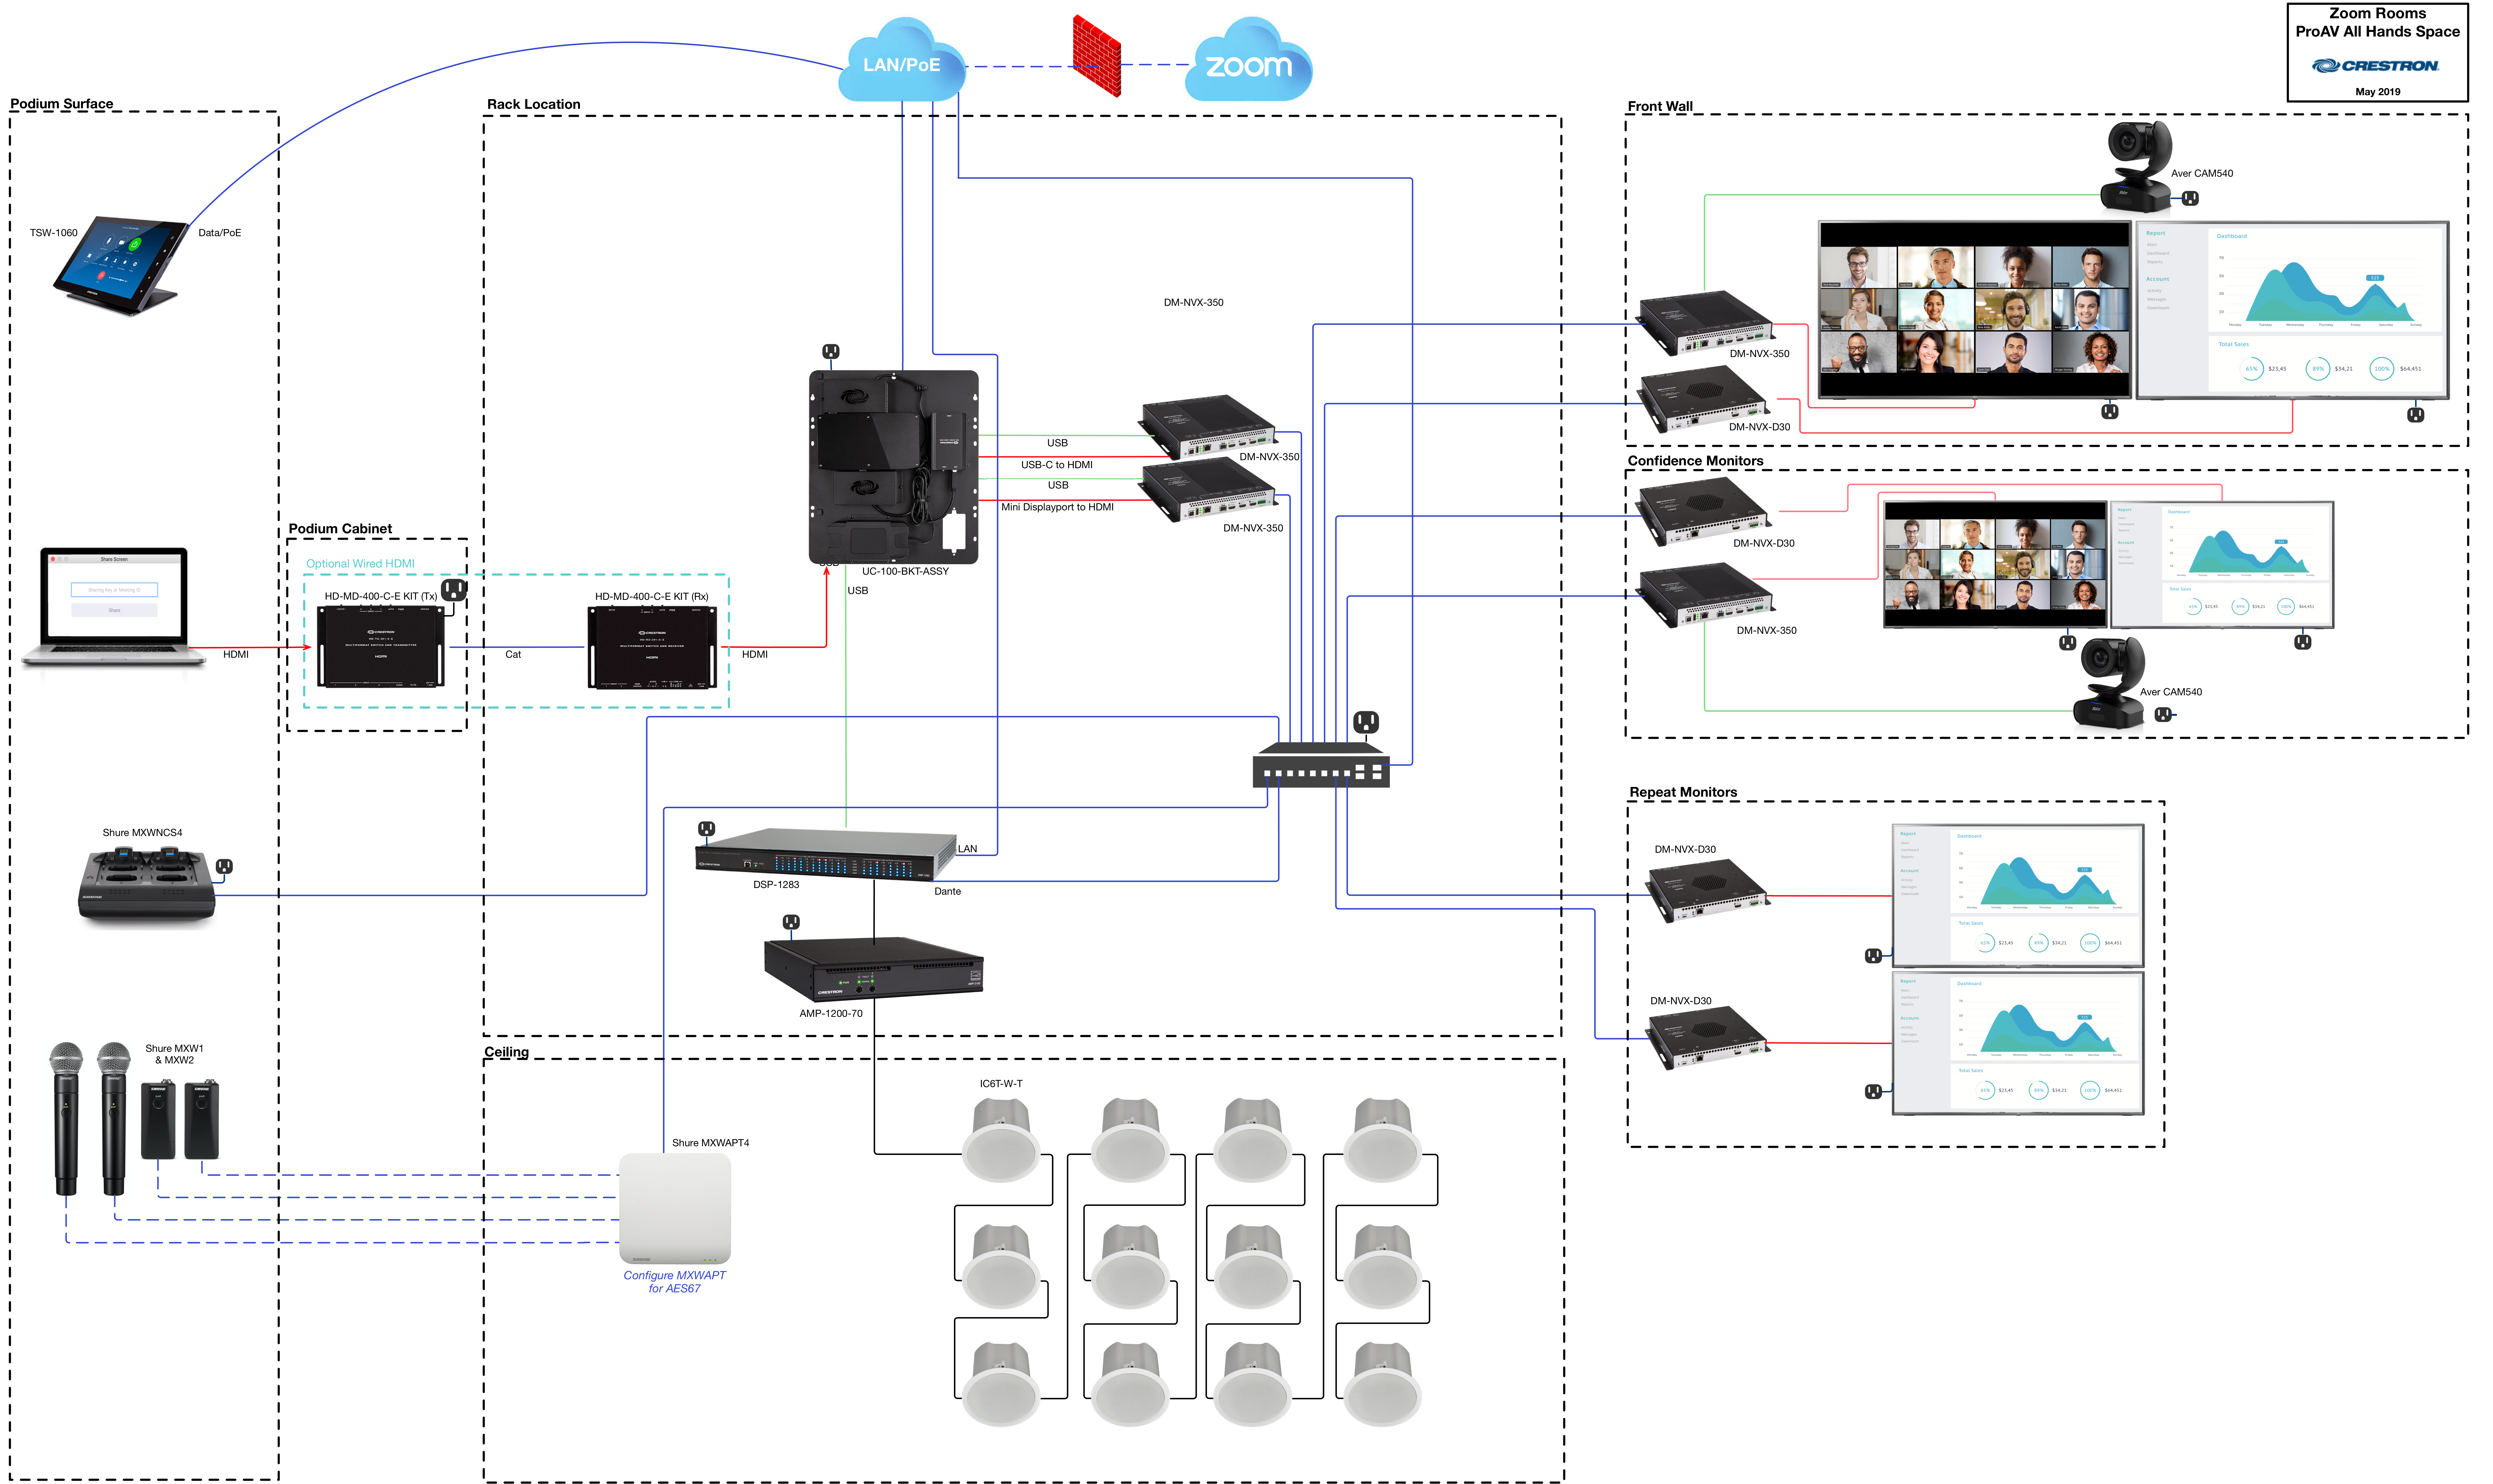 Crestron_-_Pictorial_Schematic_-_Zoom_Rooms_ProAV__All_Hands_Space_.png